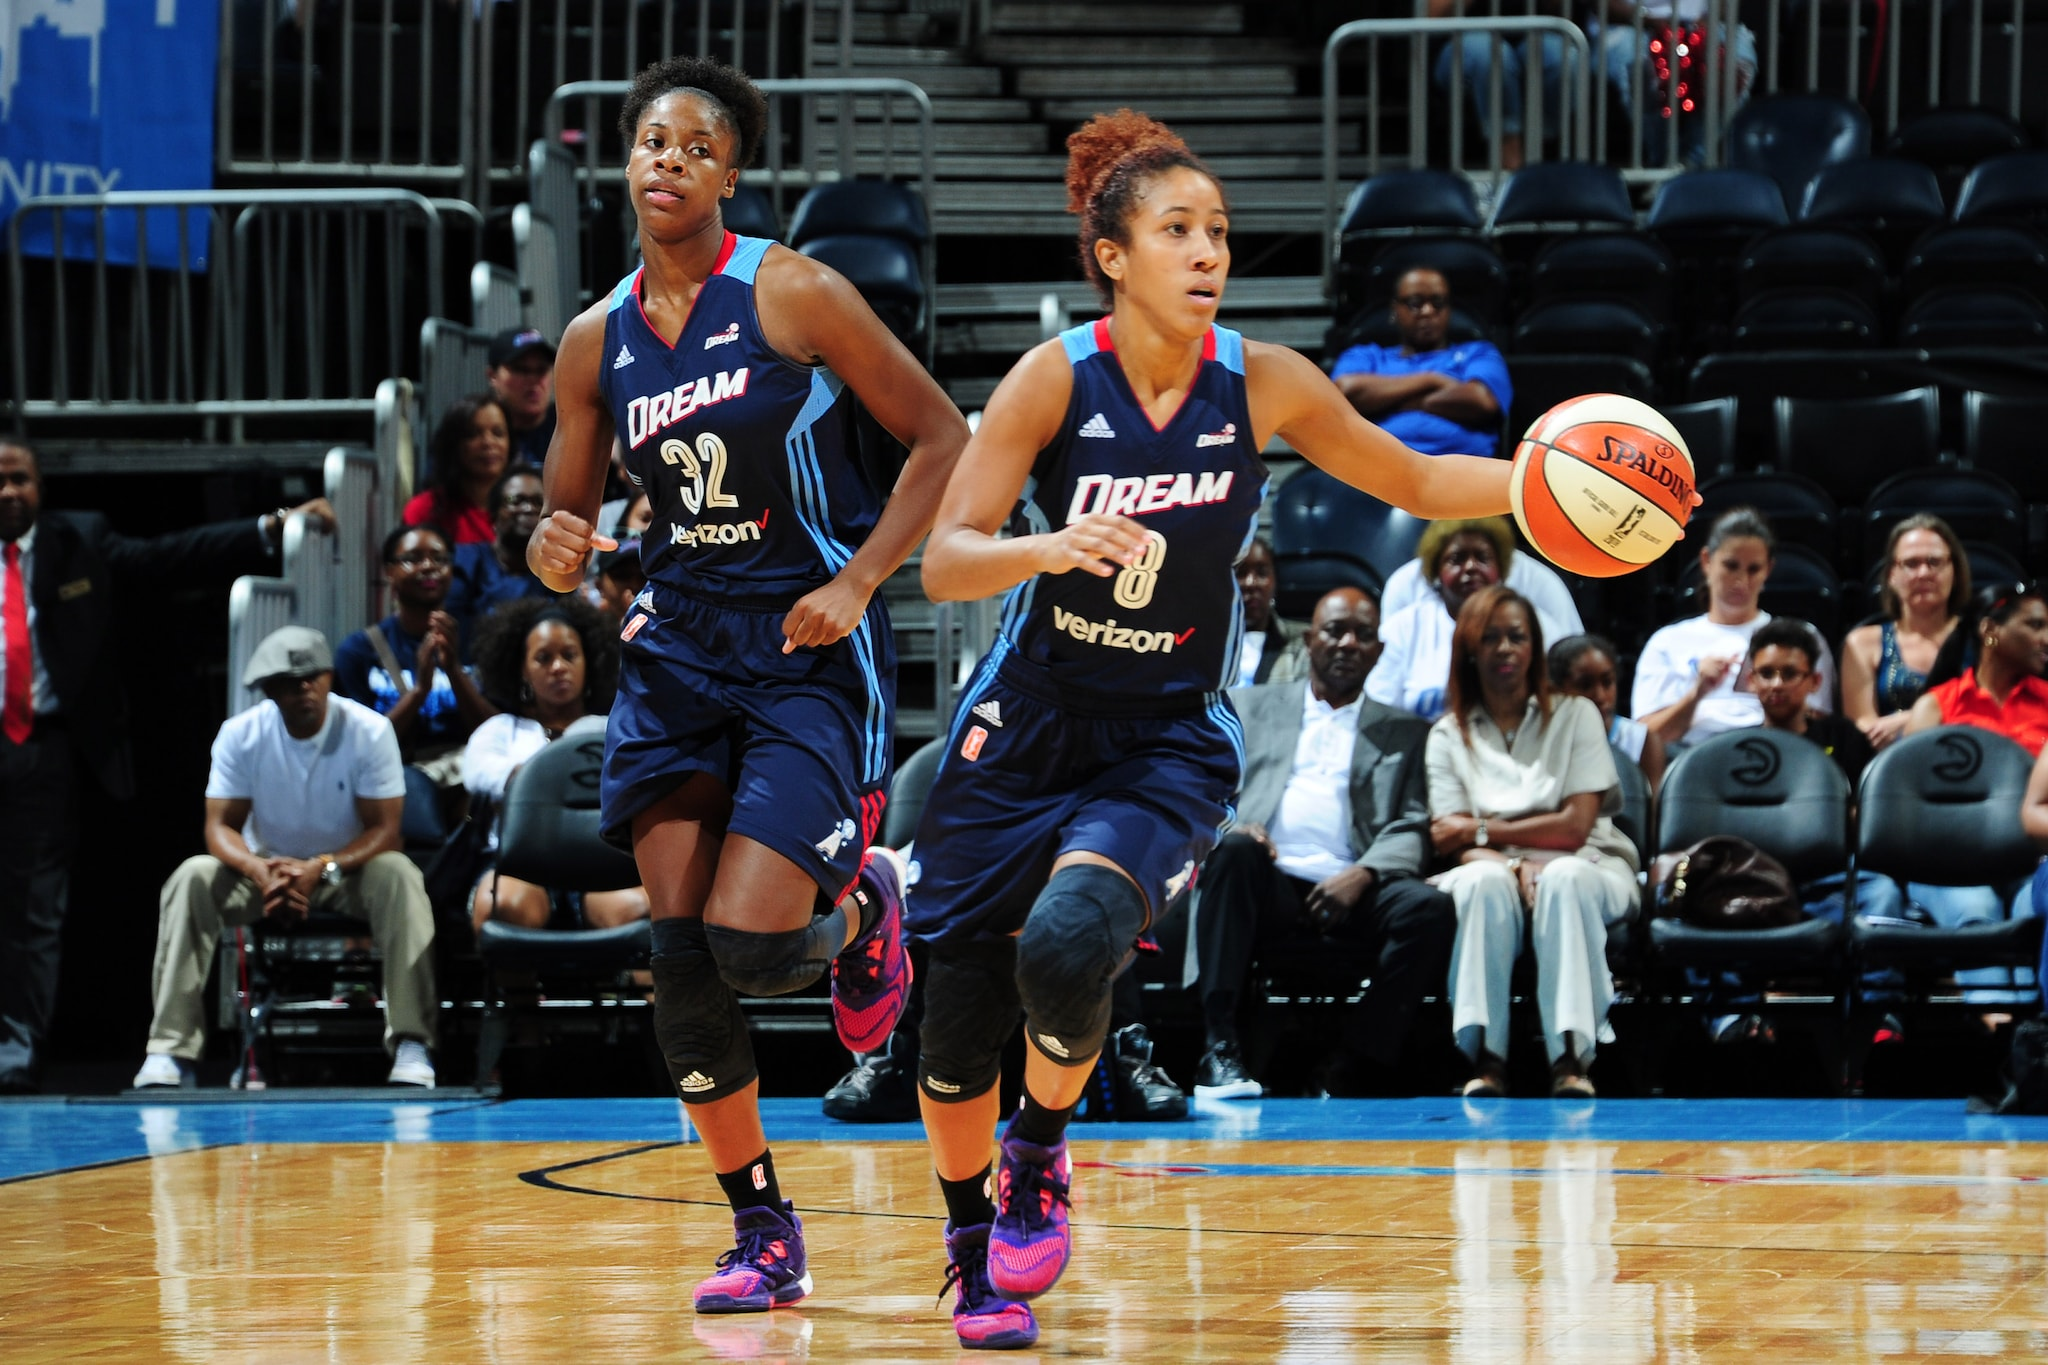 ATLANTA, GA - JUNE 12: Carla Cortijo #8 of the Atlanta Dream drives to the basket against the Connecticut Sun during the game on June 12, 2016 at Philips Arena in Atlanta, Georgia. NOTE TO USER: User expressly acknowledges and agrees that, by downloading and or using this Photograph, user is consenting to the terms and conditions of the Getty Images License Agreement. Mandatory Copyright Notice: Copyright 2016 NBAE (Photo by Scott Cunningham/NBAE via Getty Images)